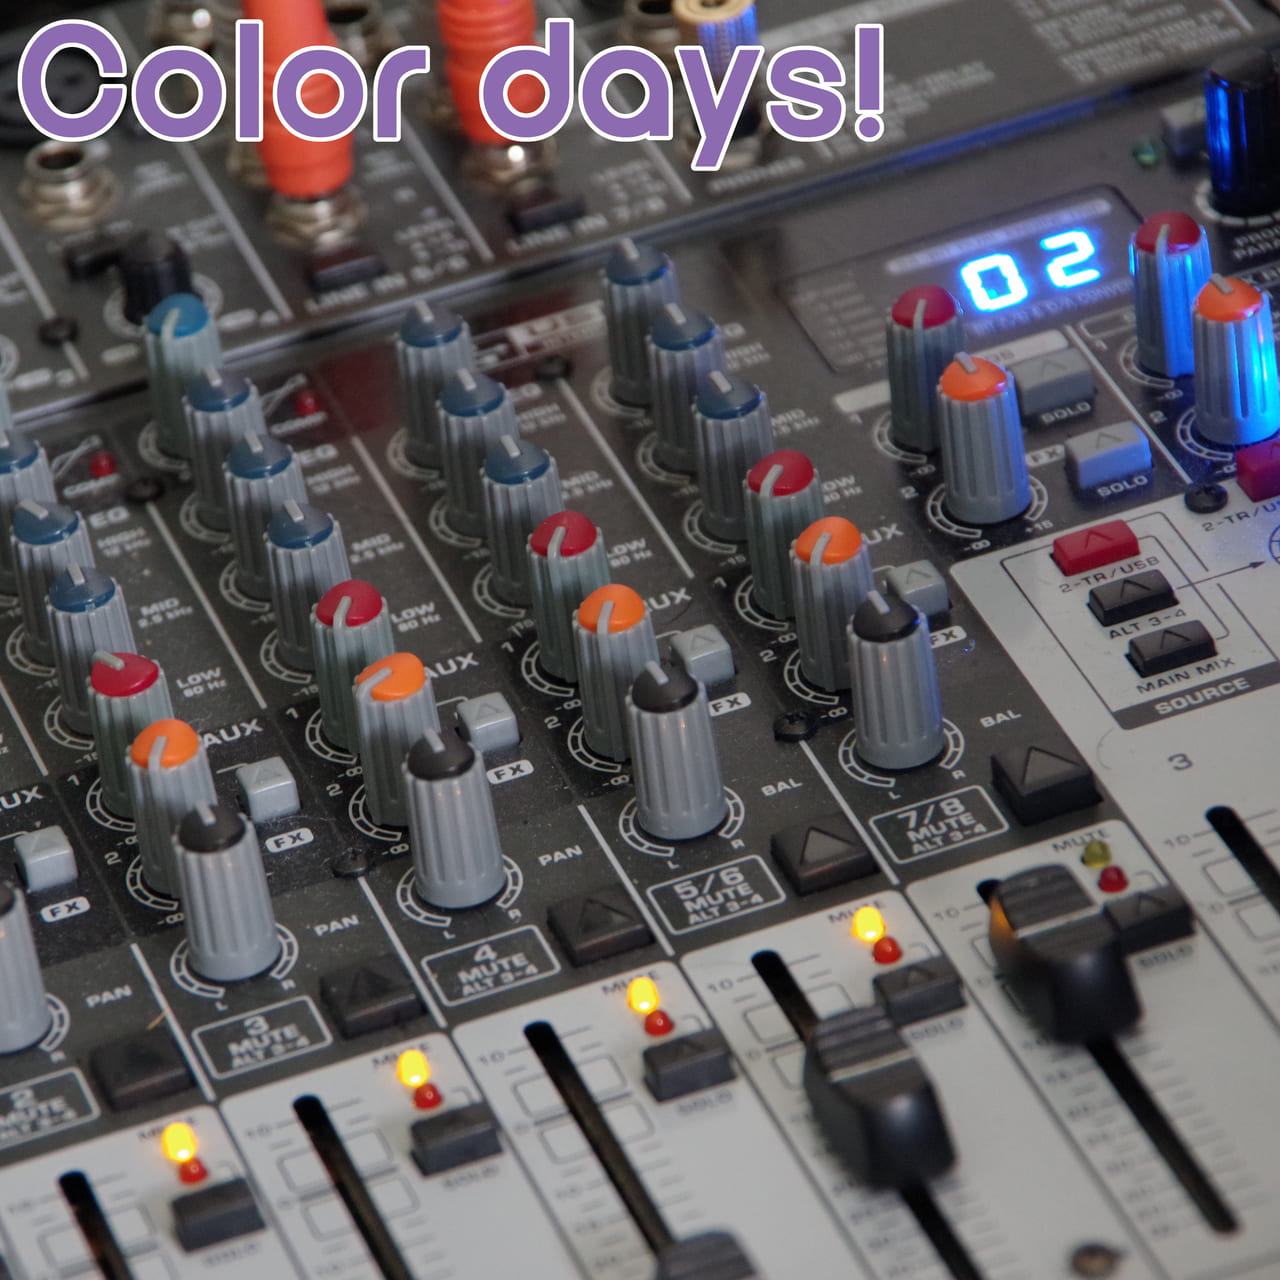 Episode_488『【速報】Color days!完売』